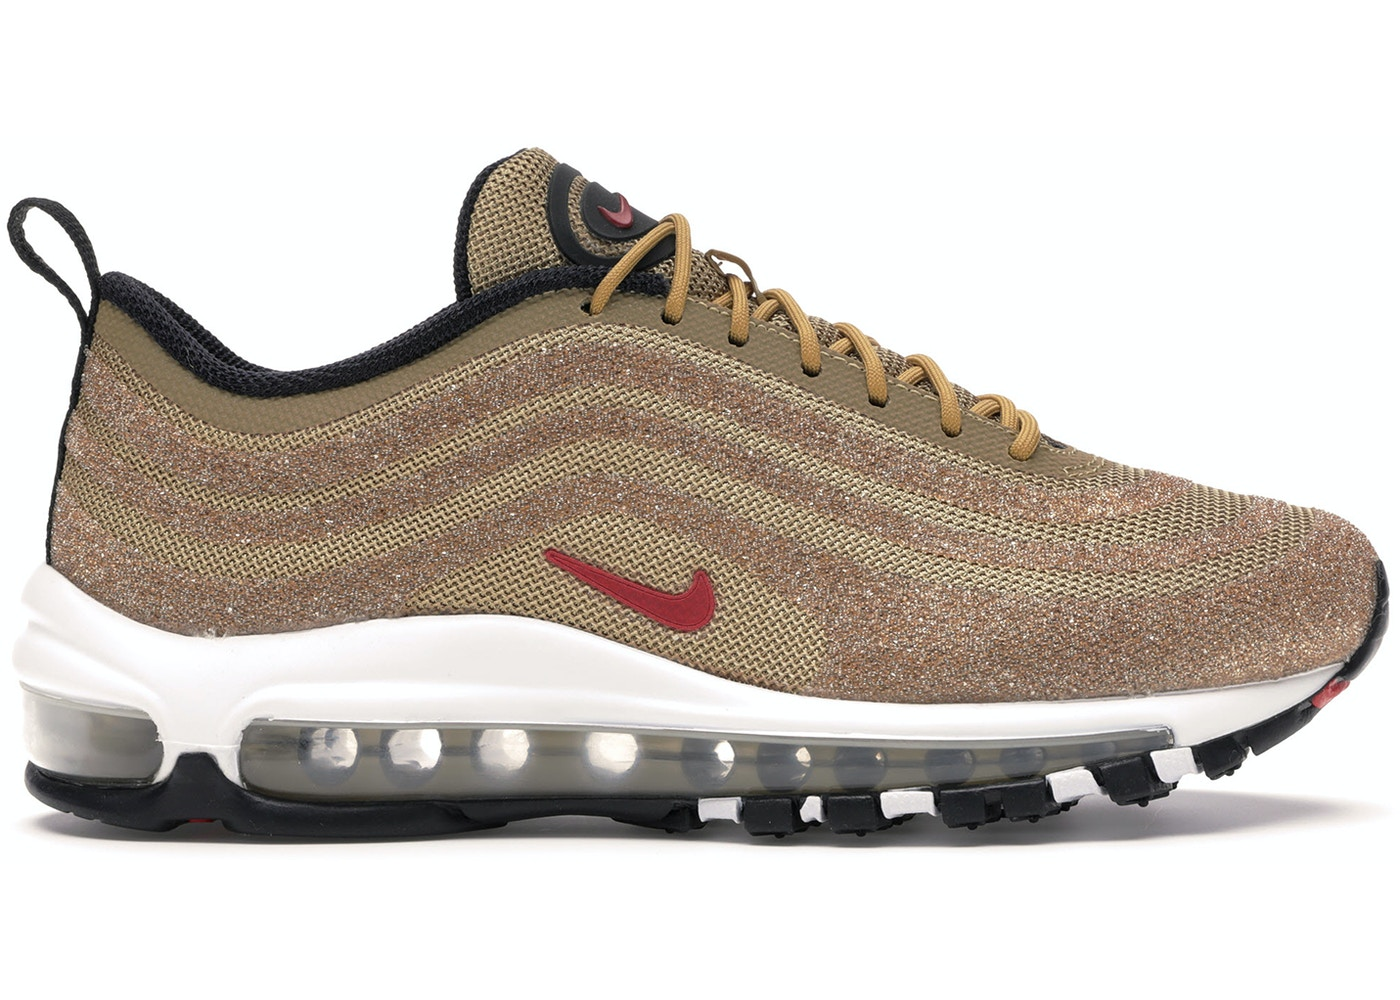 Air Max 97 Lx Swarovski Gold W